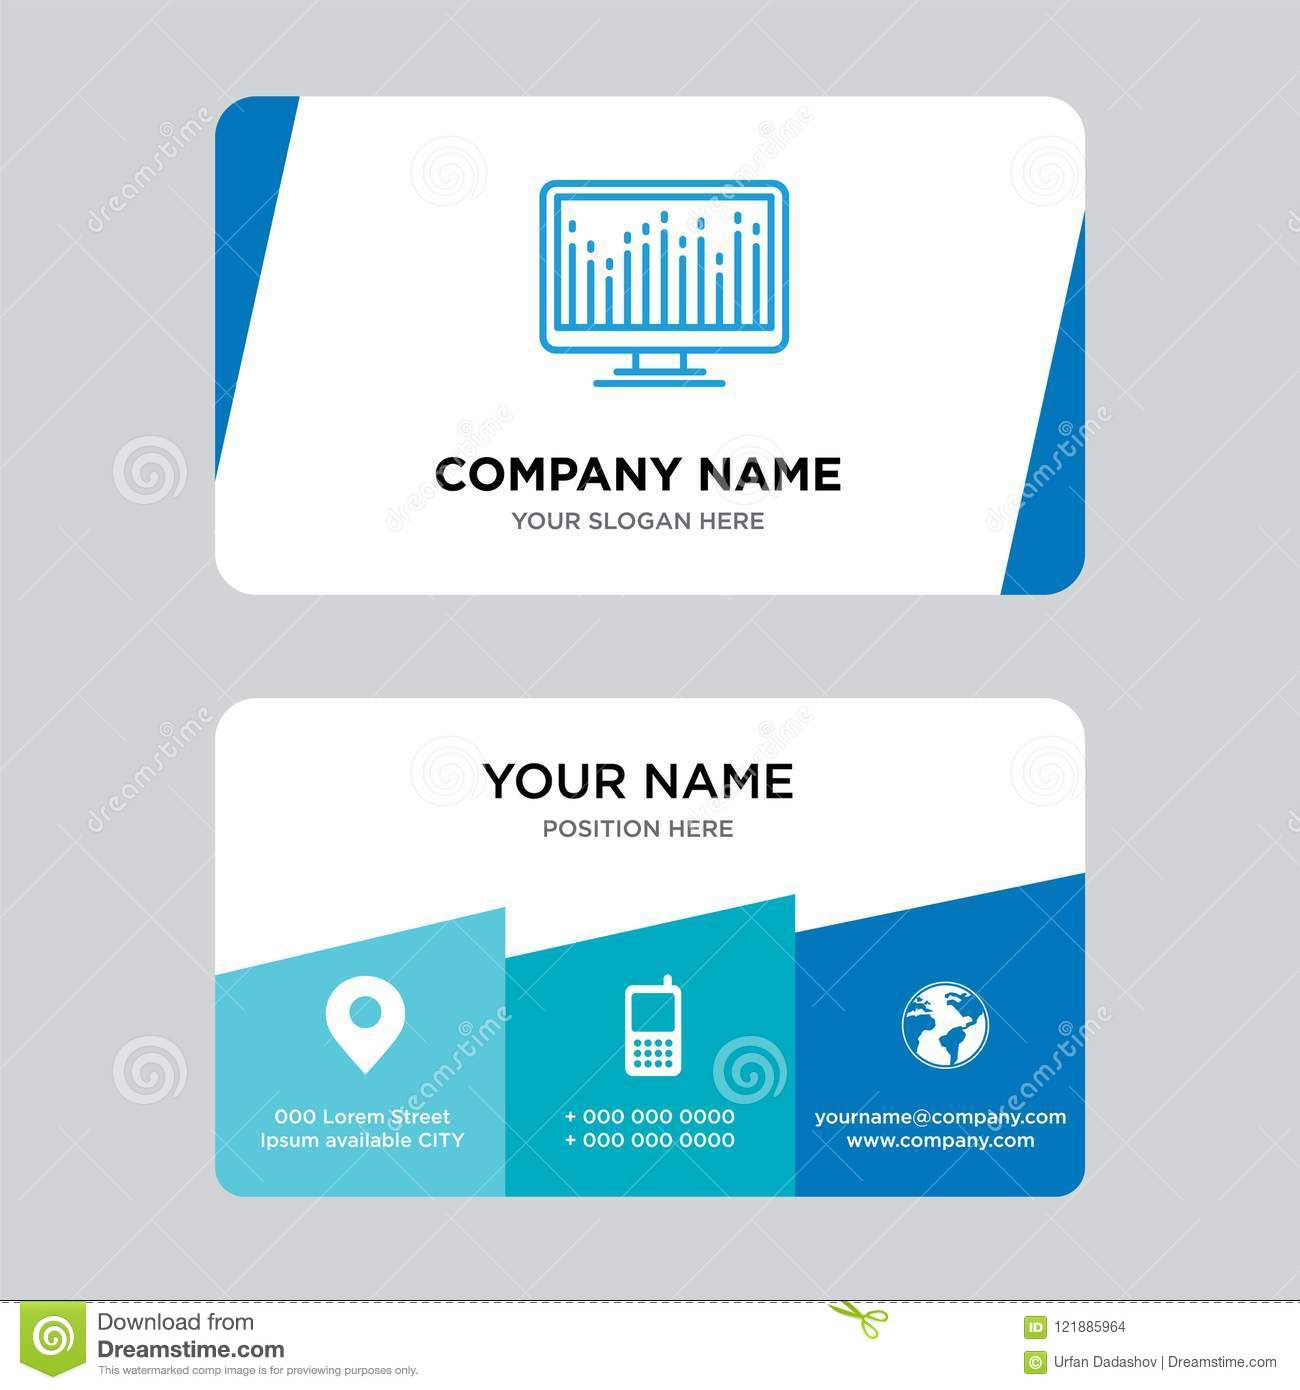 Computer business card design template visiting for your company computer business card design template visiting for your company modern creative and clean identity card vector illustration accmission Gallery